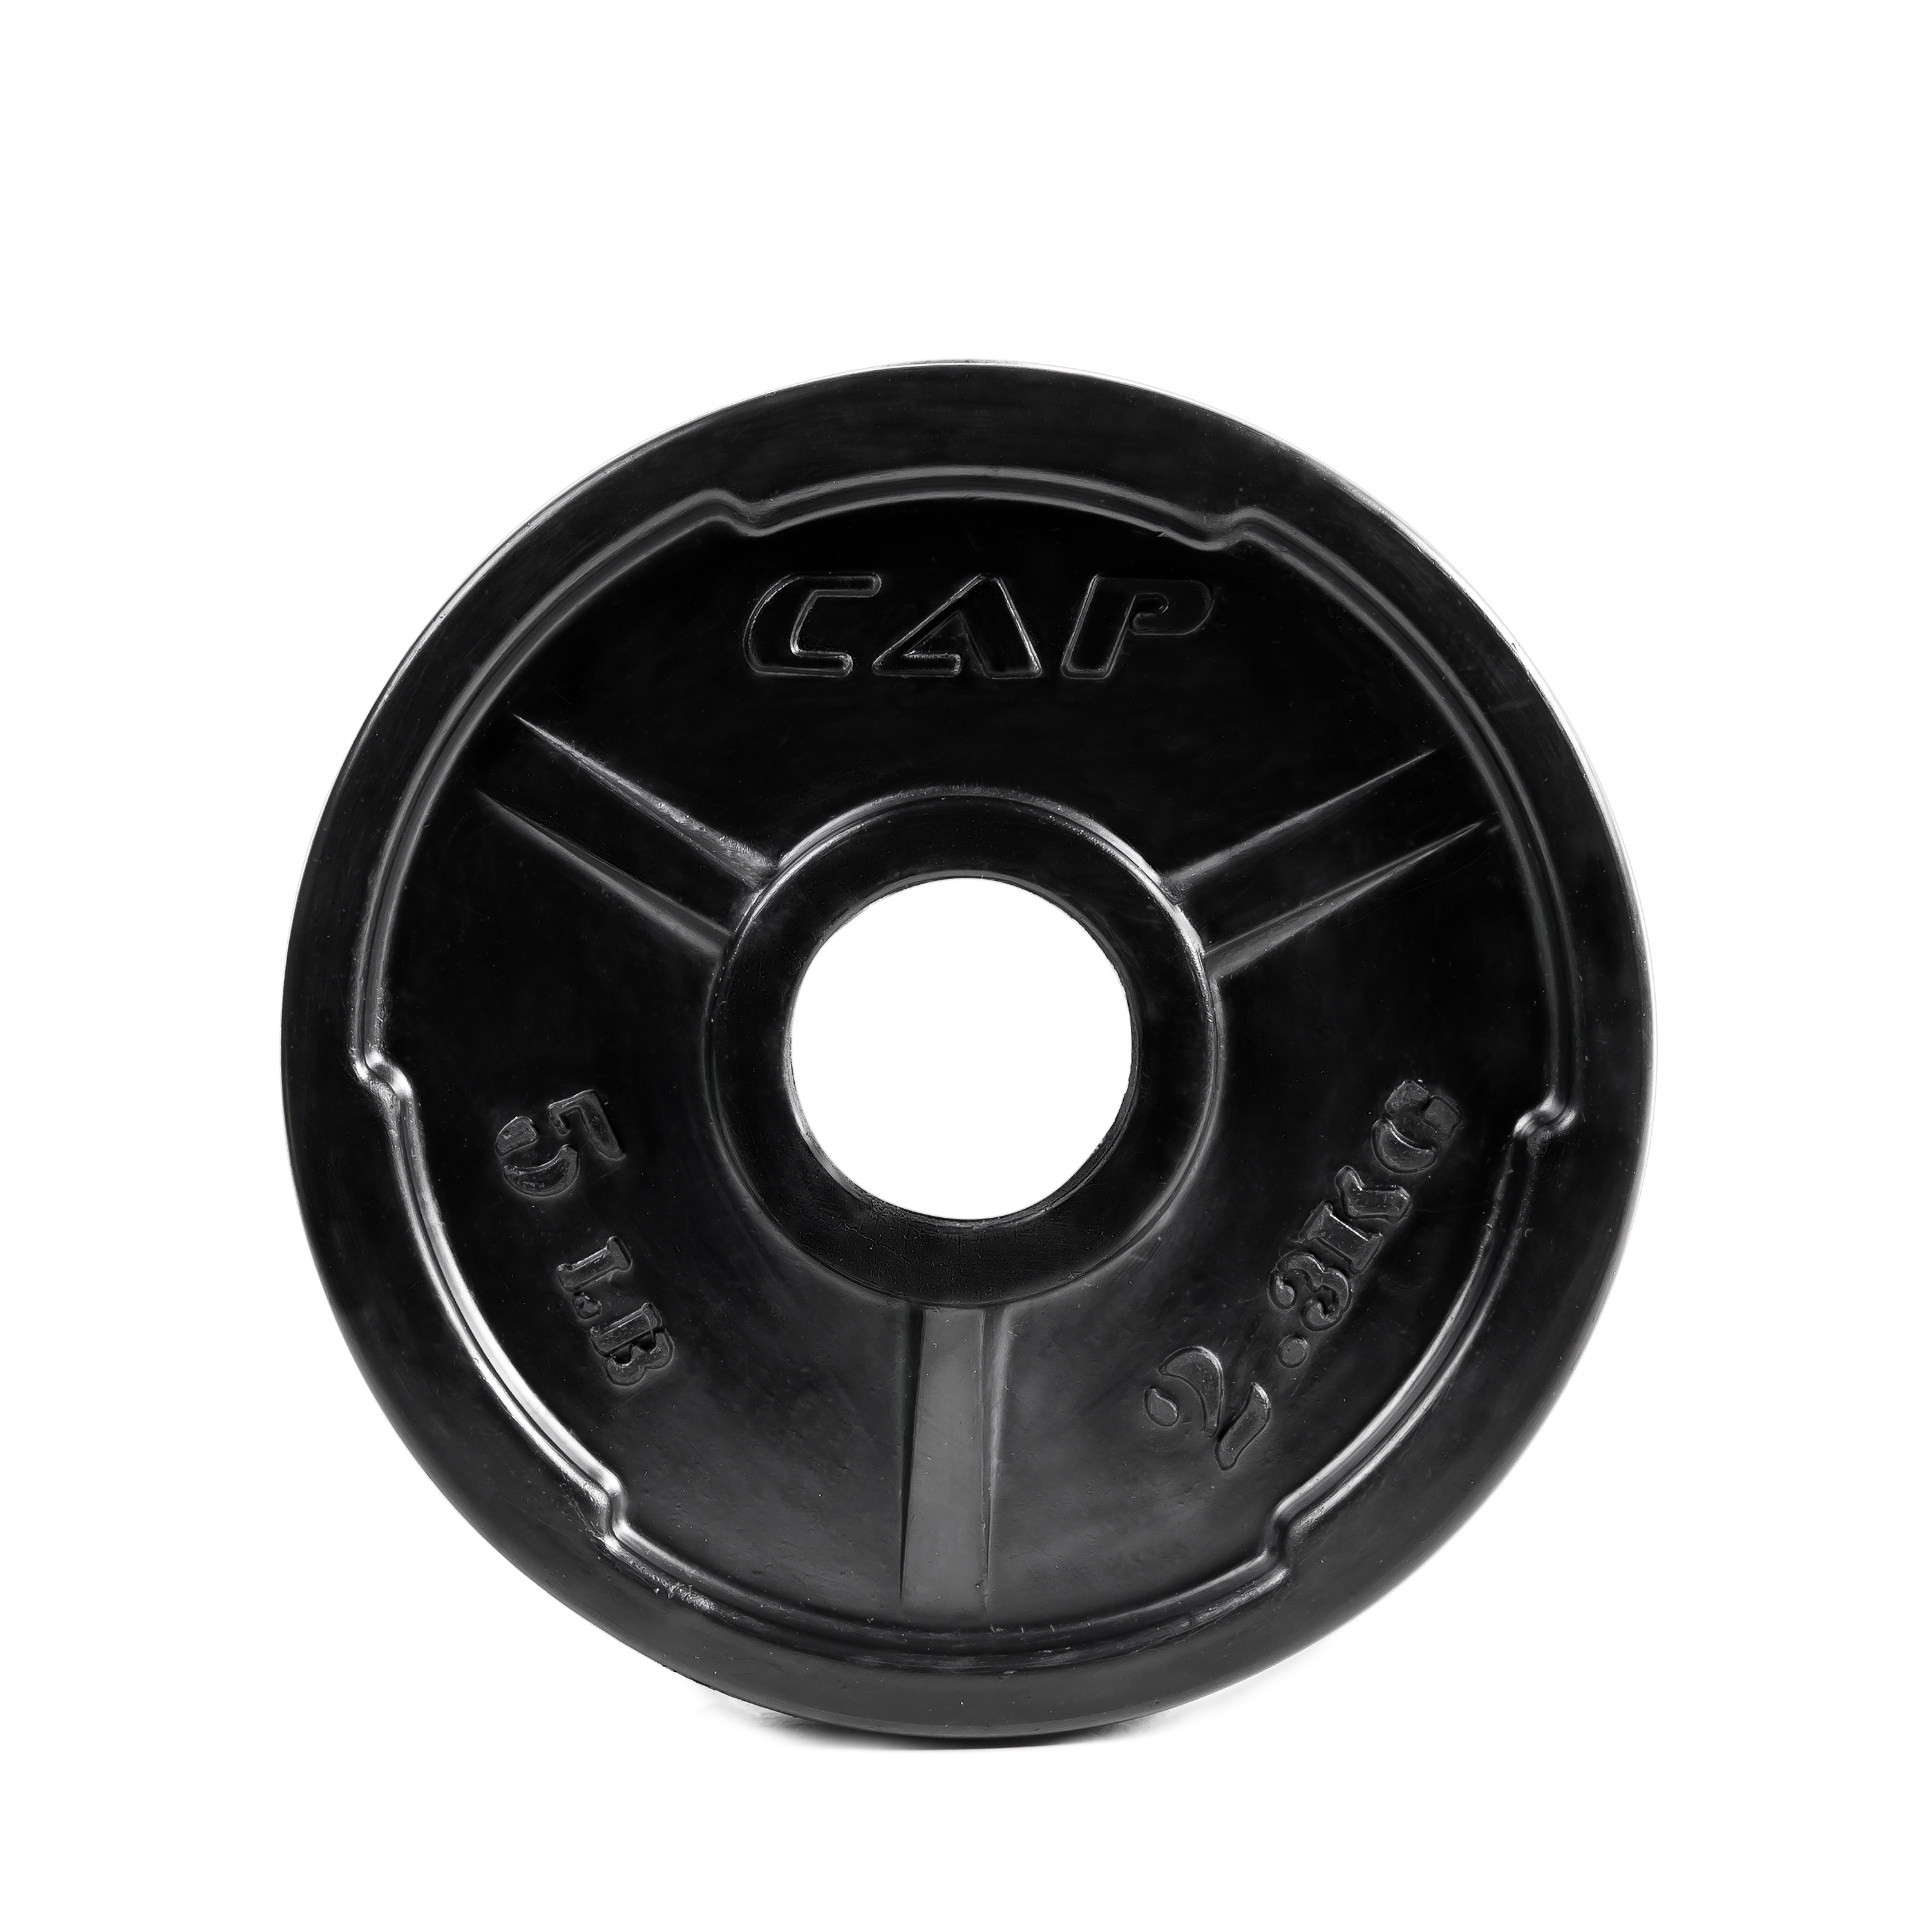 "CAP Barbell 2"" Olympic Rubber Encased Commerical Grip Plate, Single"